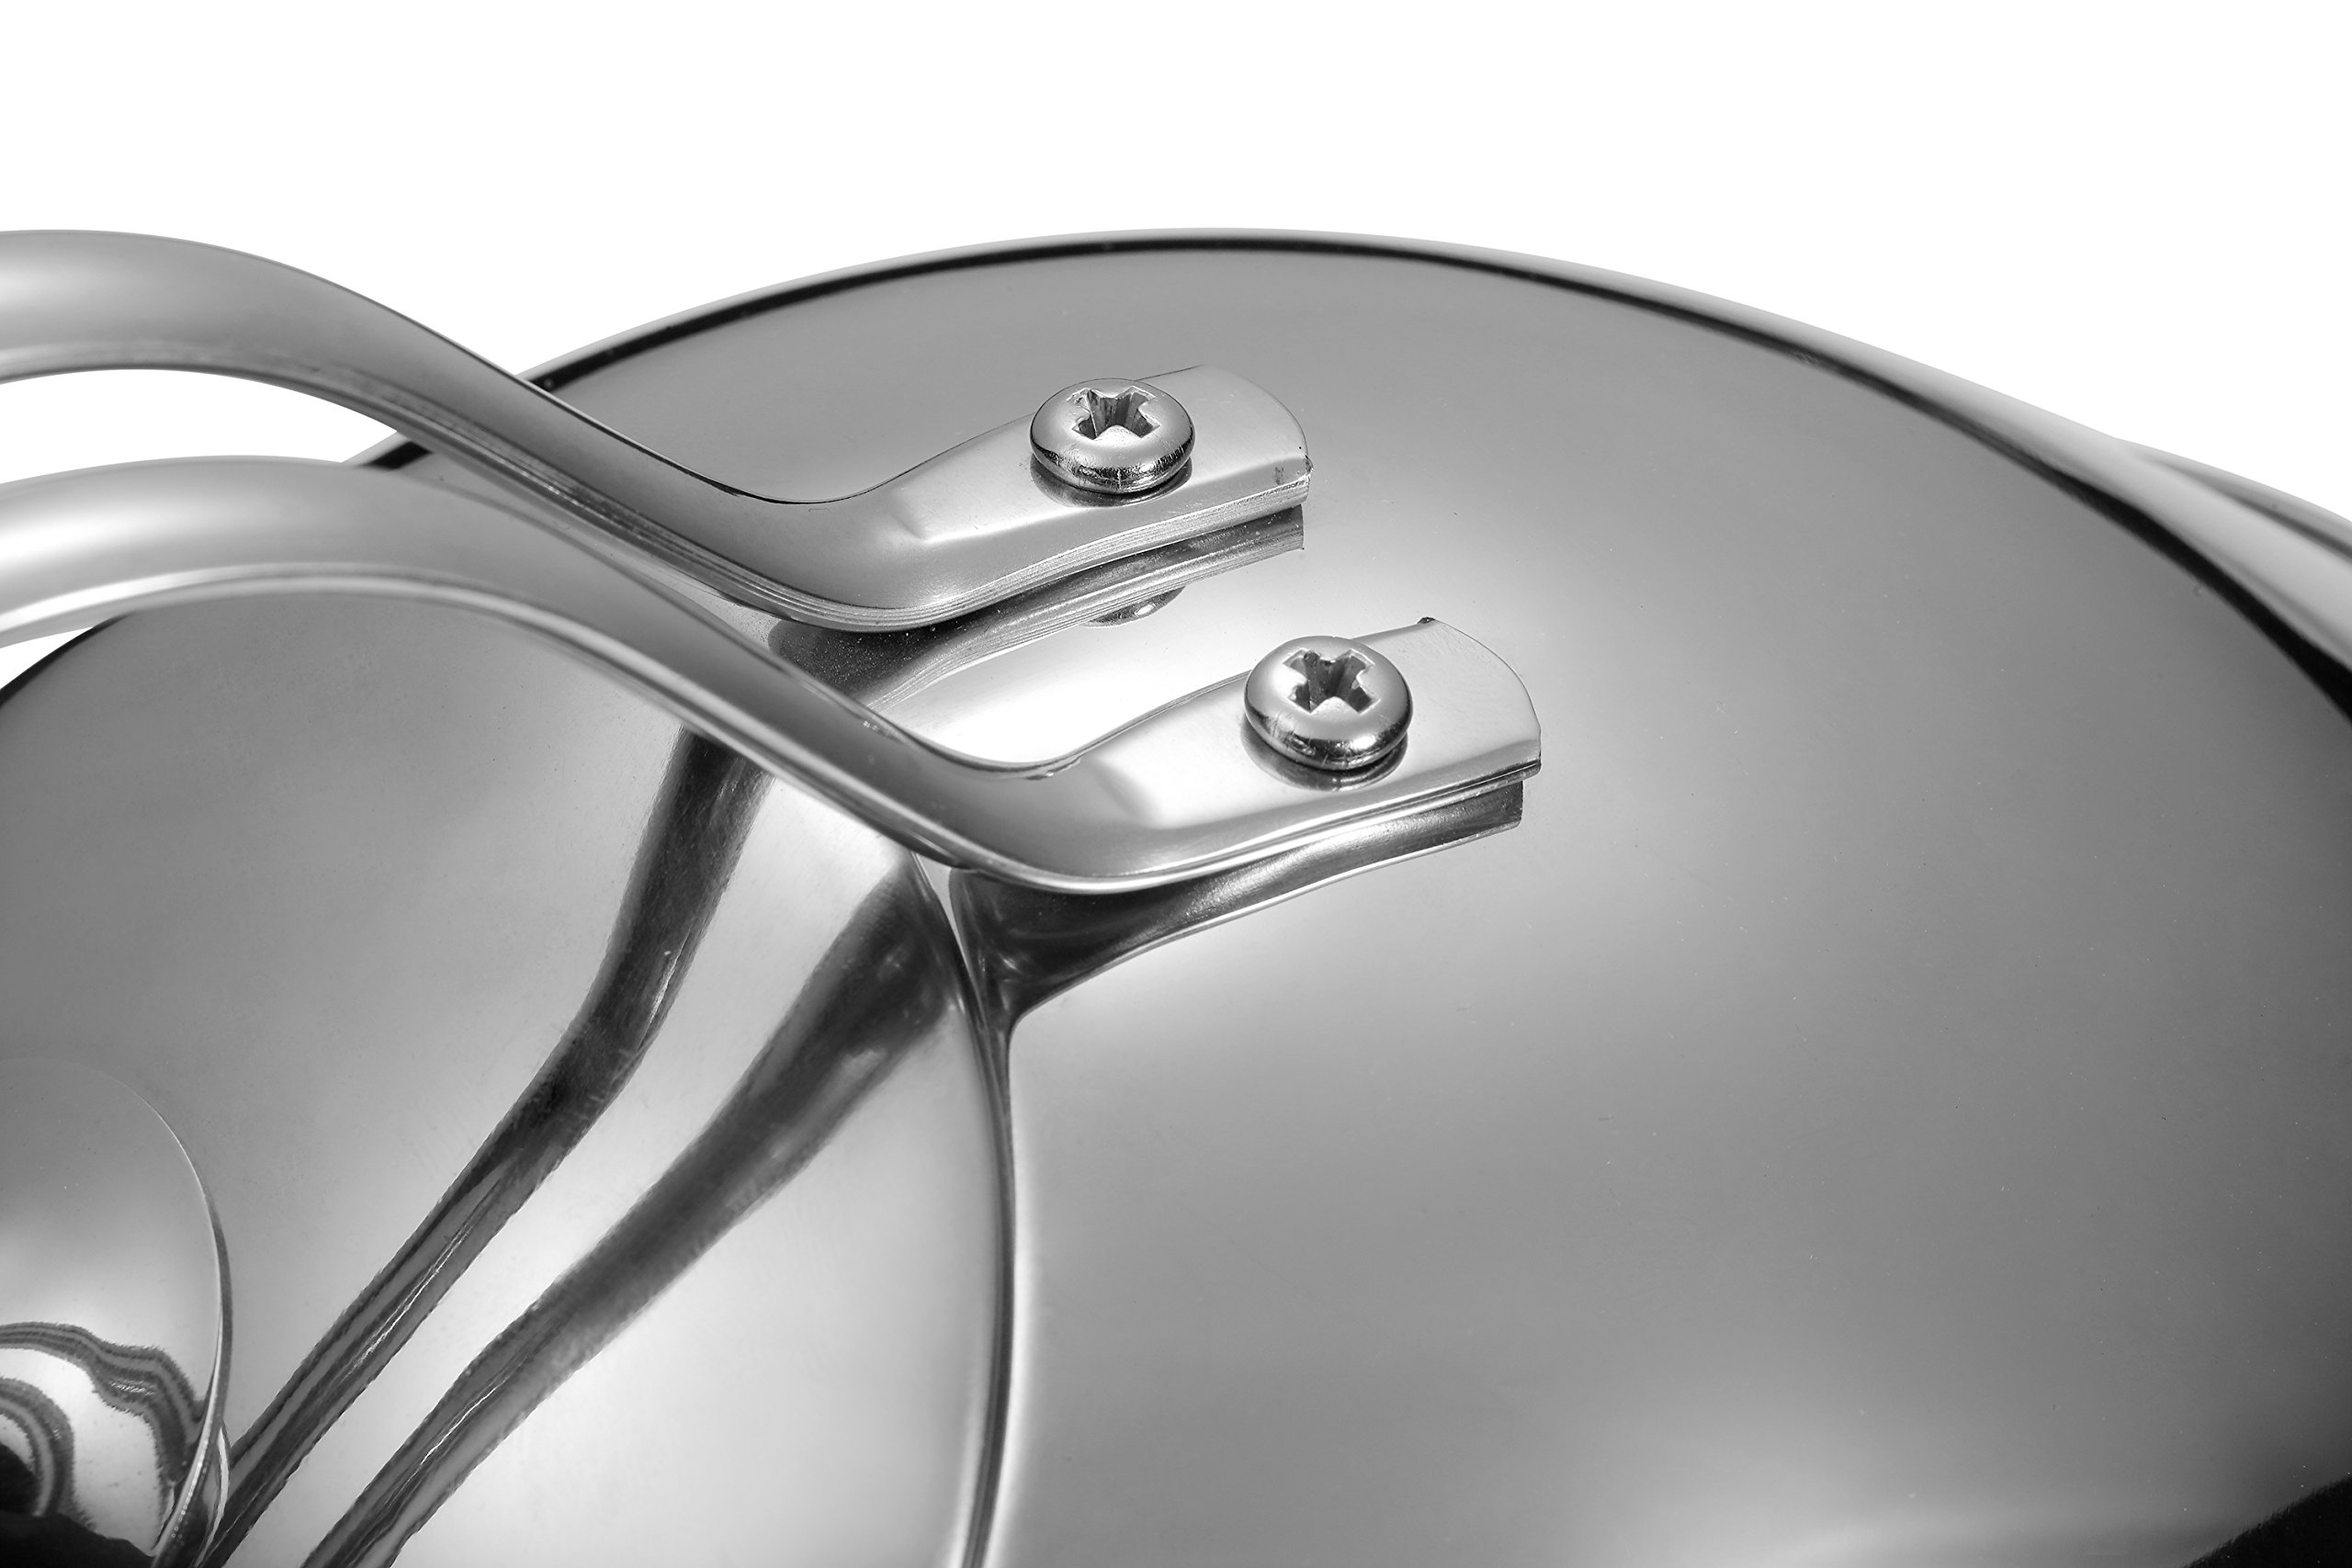 Injoy Whistling Tea Kettle 304 Stainless Steel Teapot Classic Cookware in LFGB/FDA Standard for All Stovetops - 1  Insulation Pad Included, 2.64 Quart/2.5 L, Silver by InJoy (Image #6)